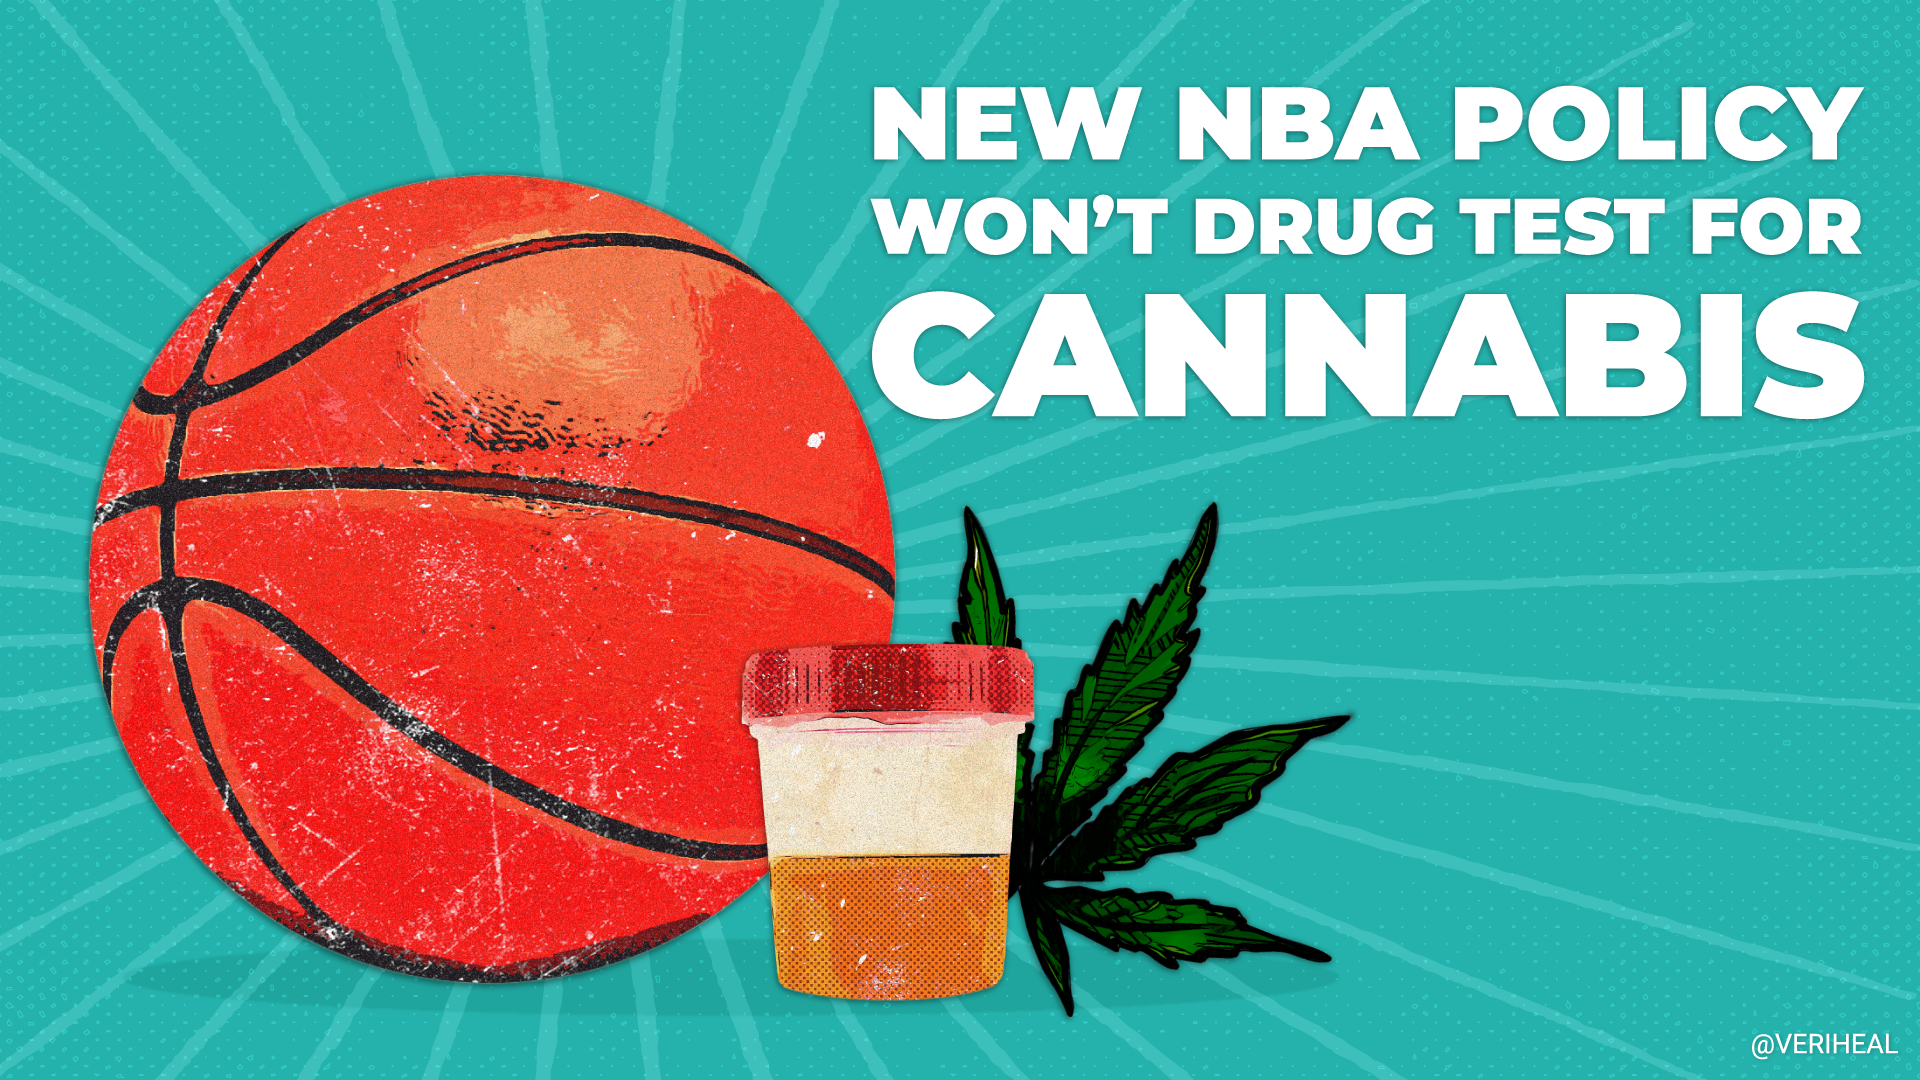 NBA Players Will Not Be Tested for Cannabis This Season